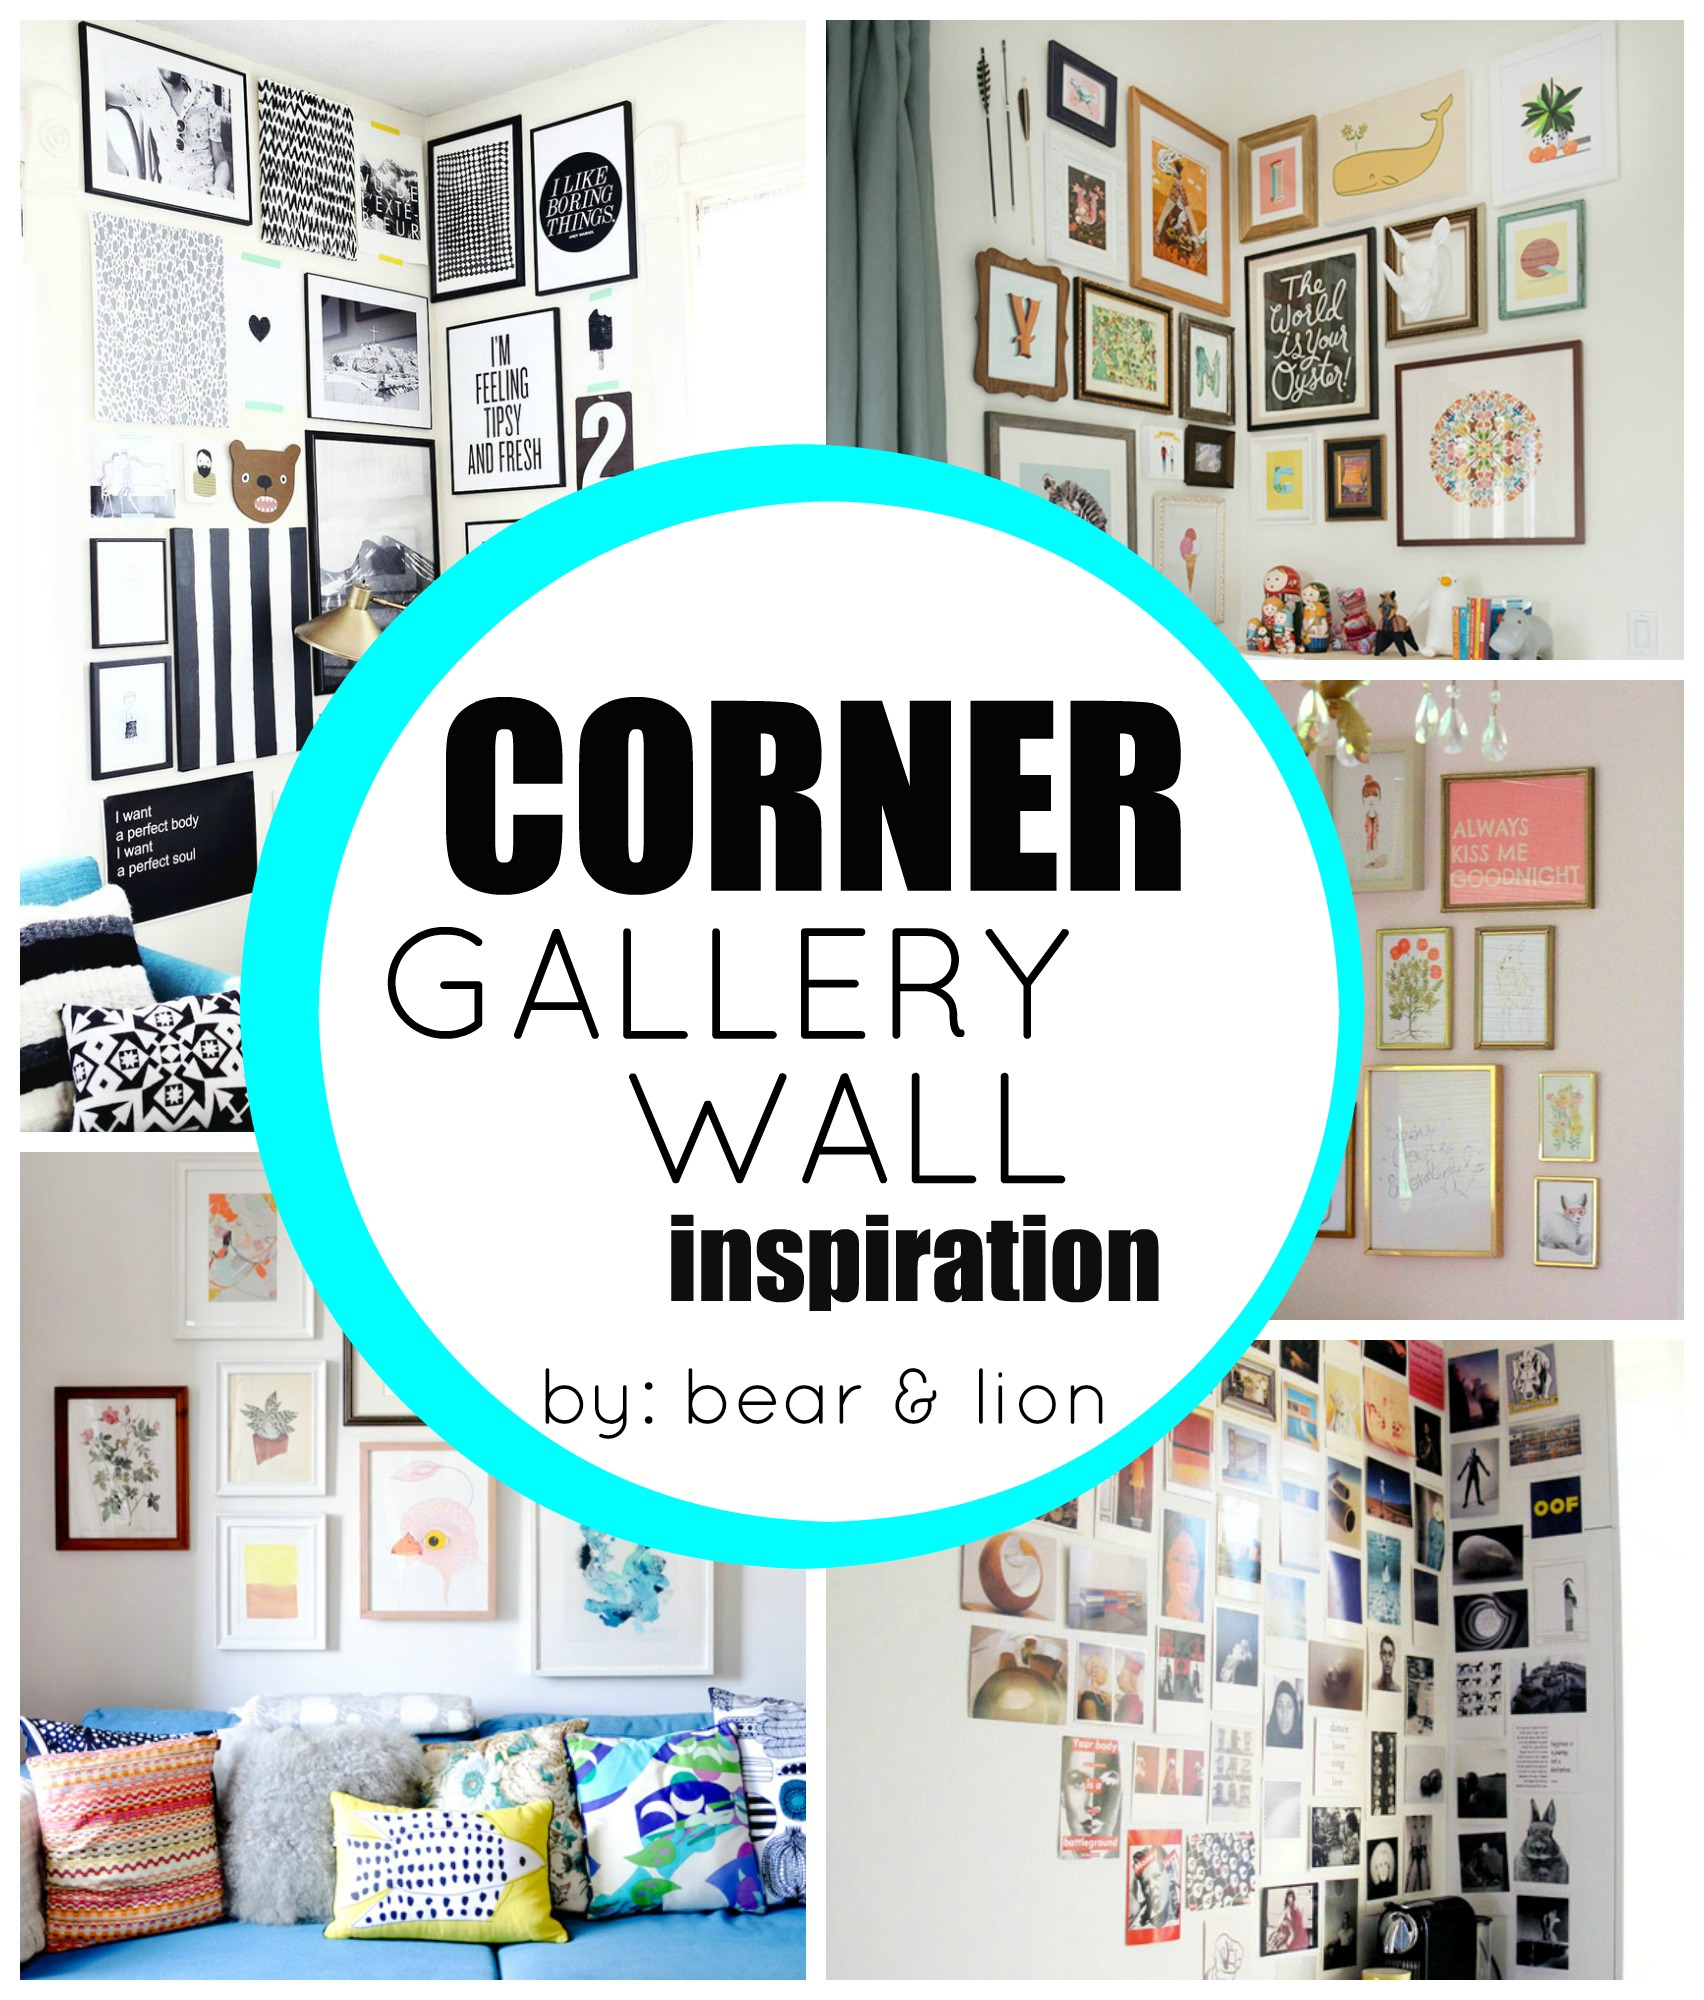 Corner gallery wall inspirations - How to decorate corner walls ...